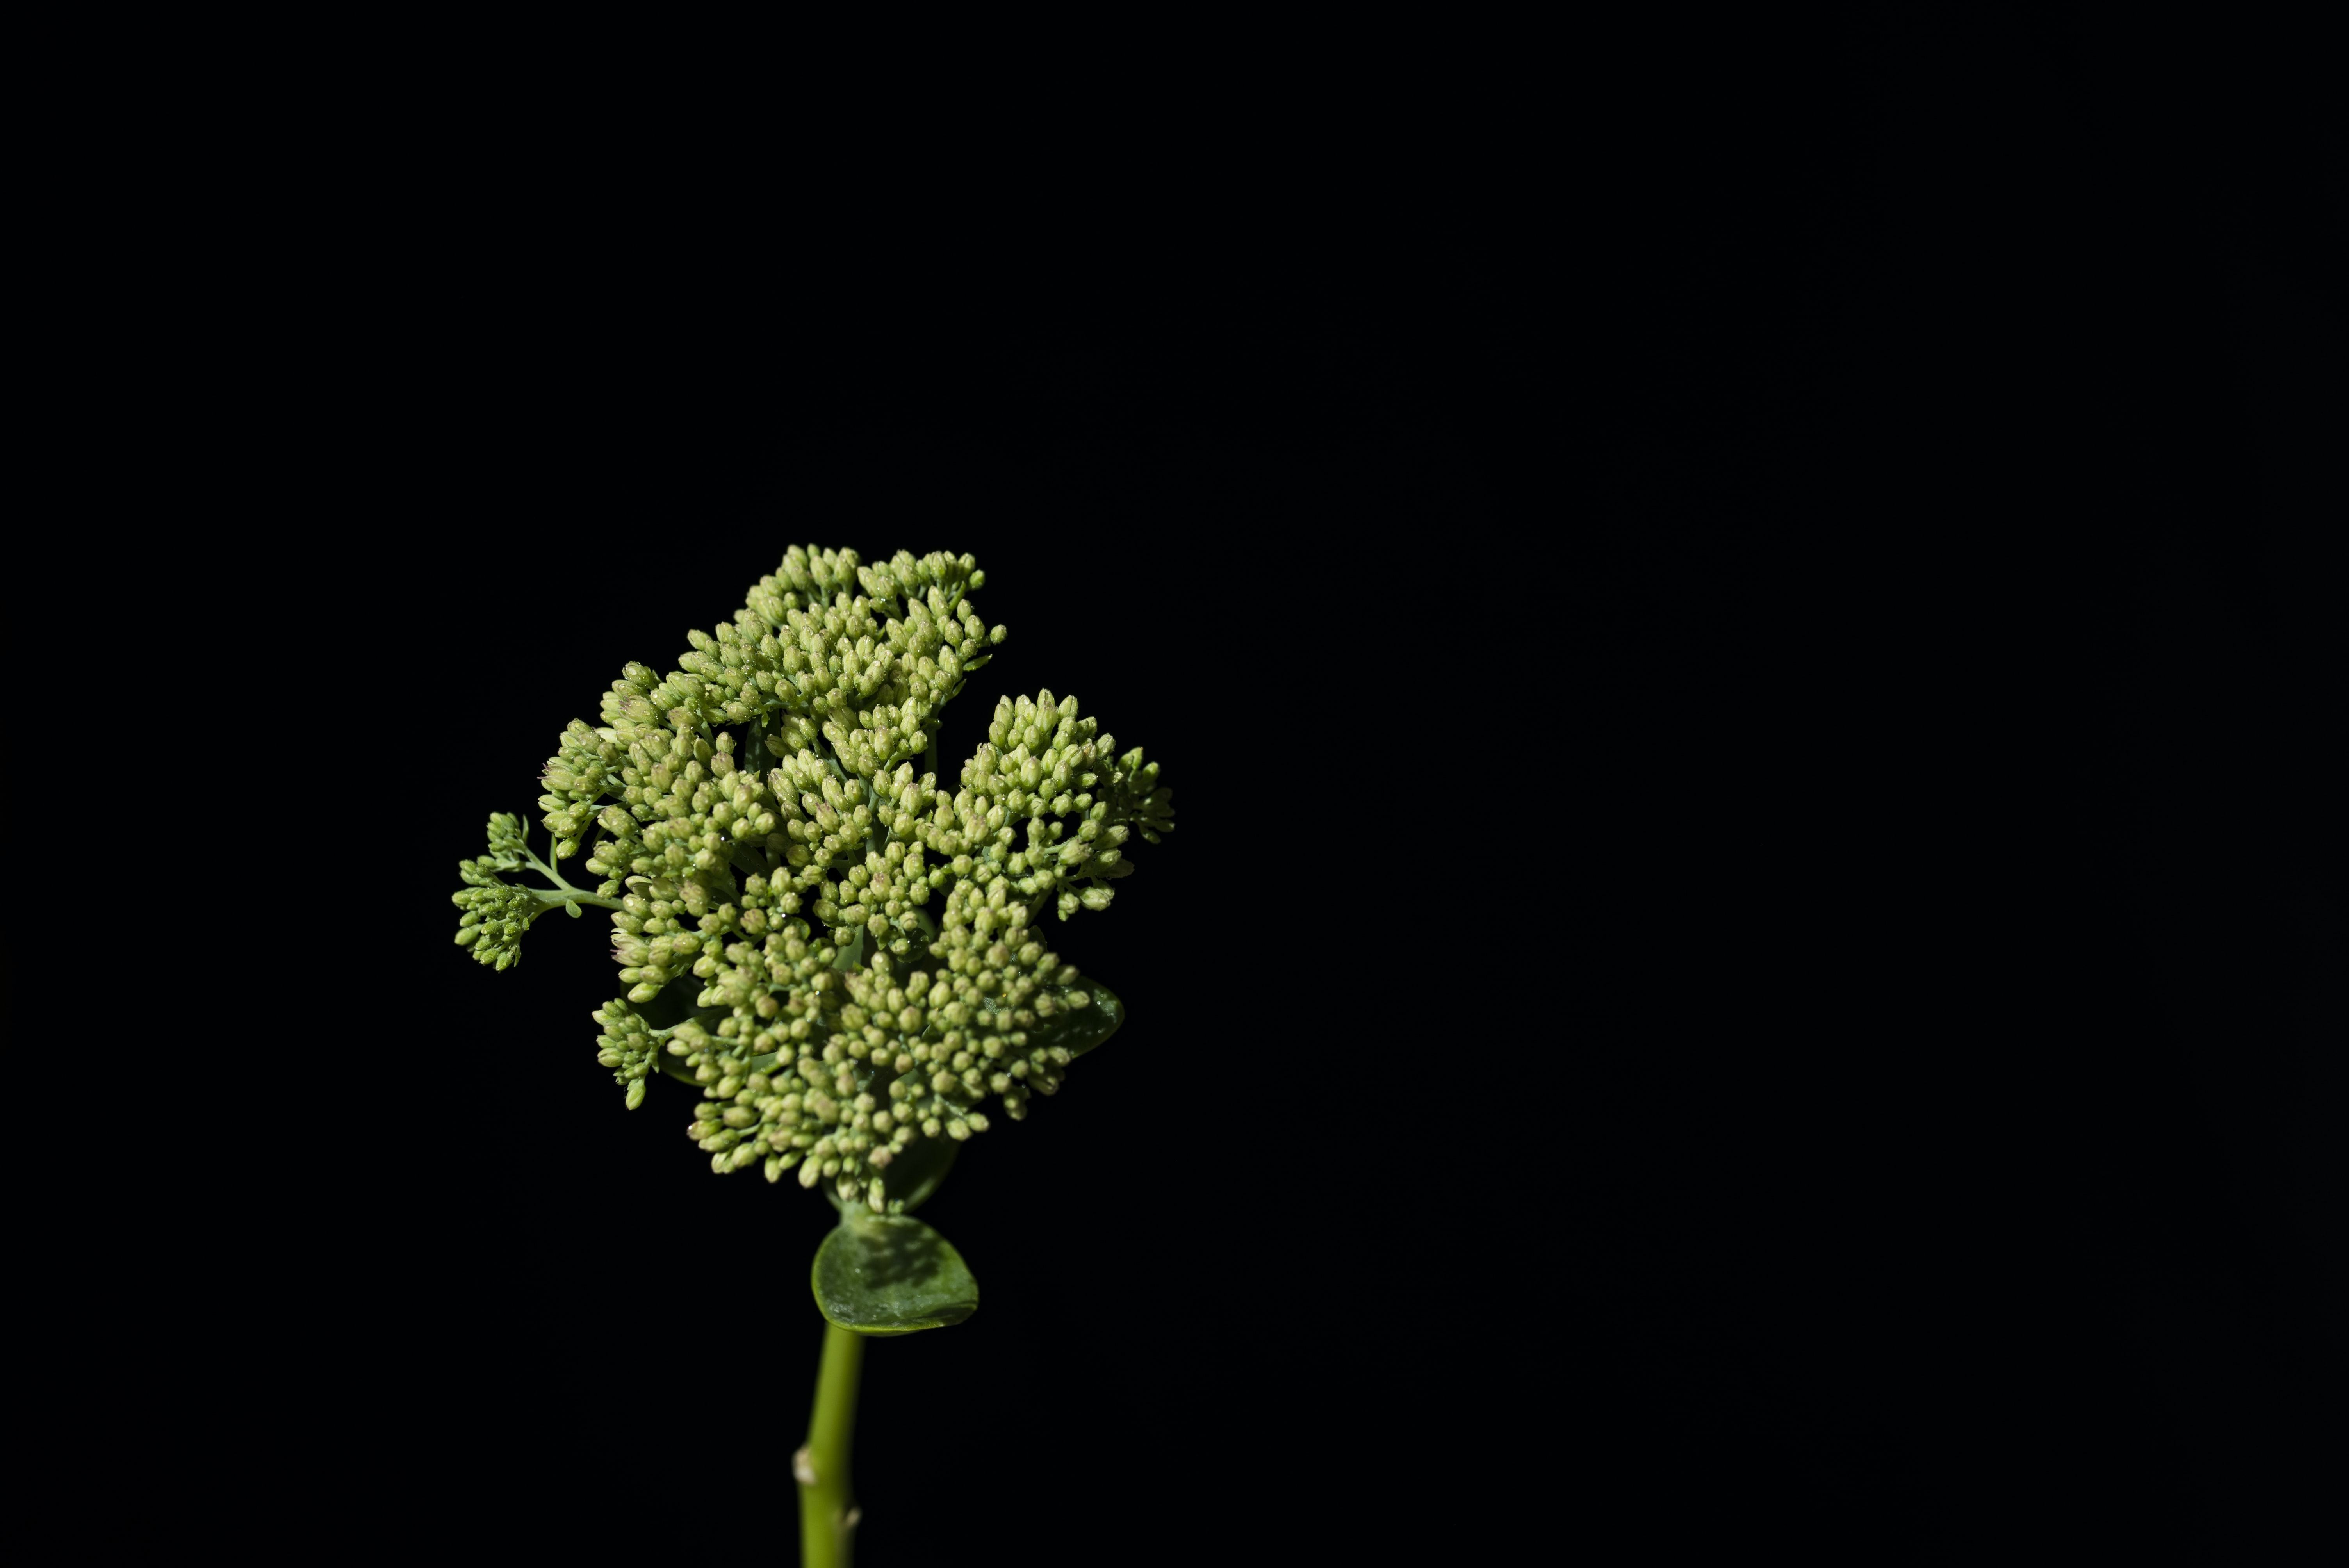 green clustered flower with black background